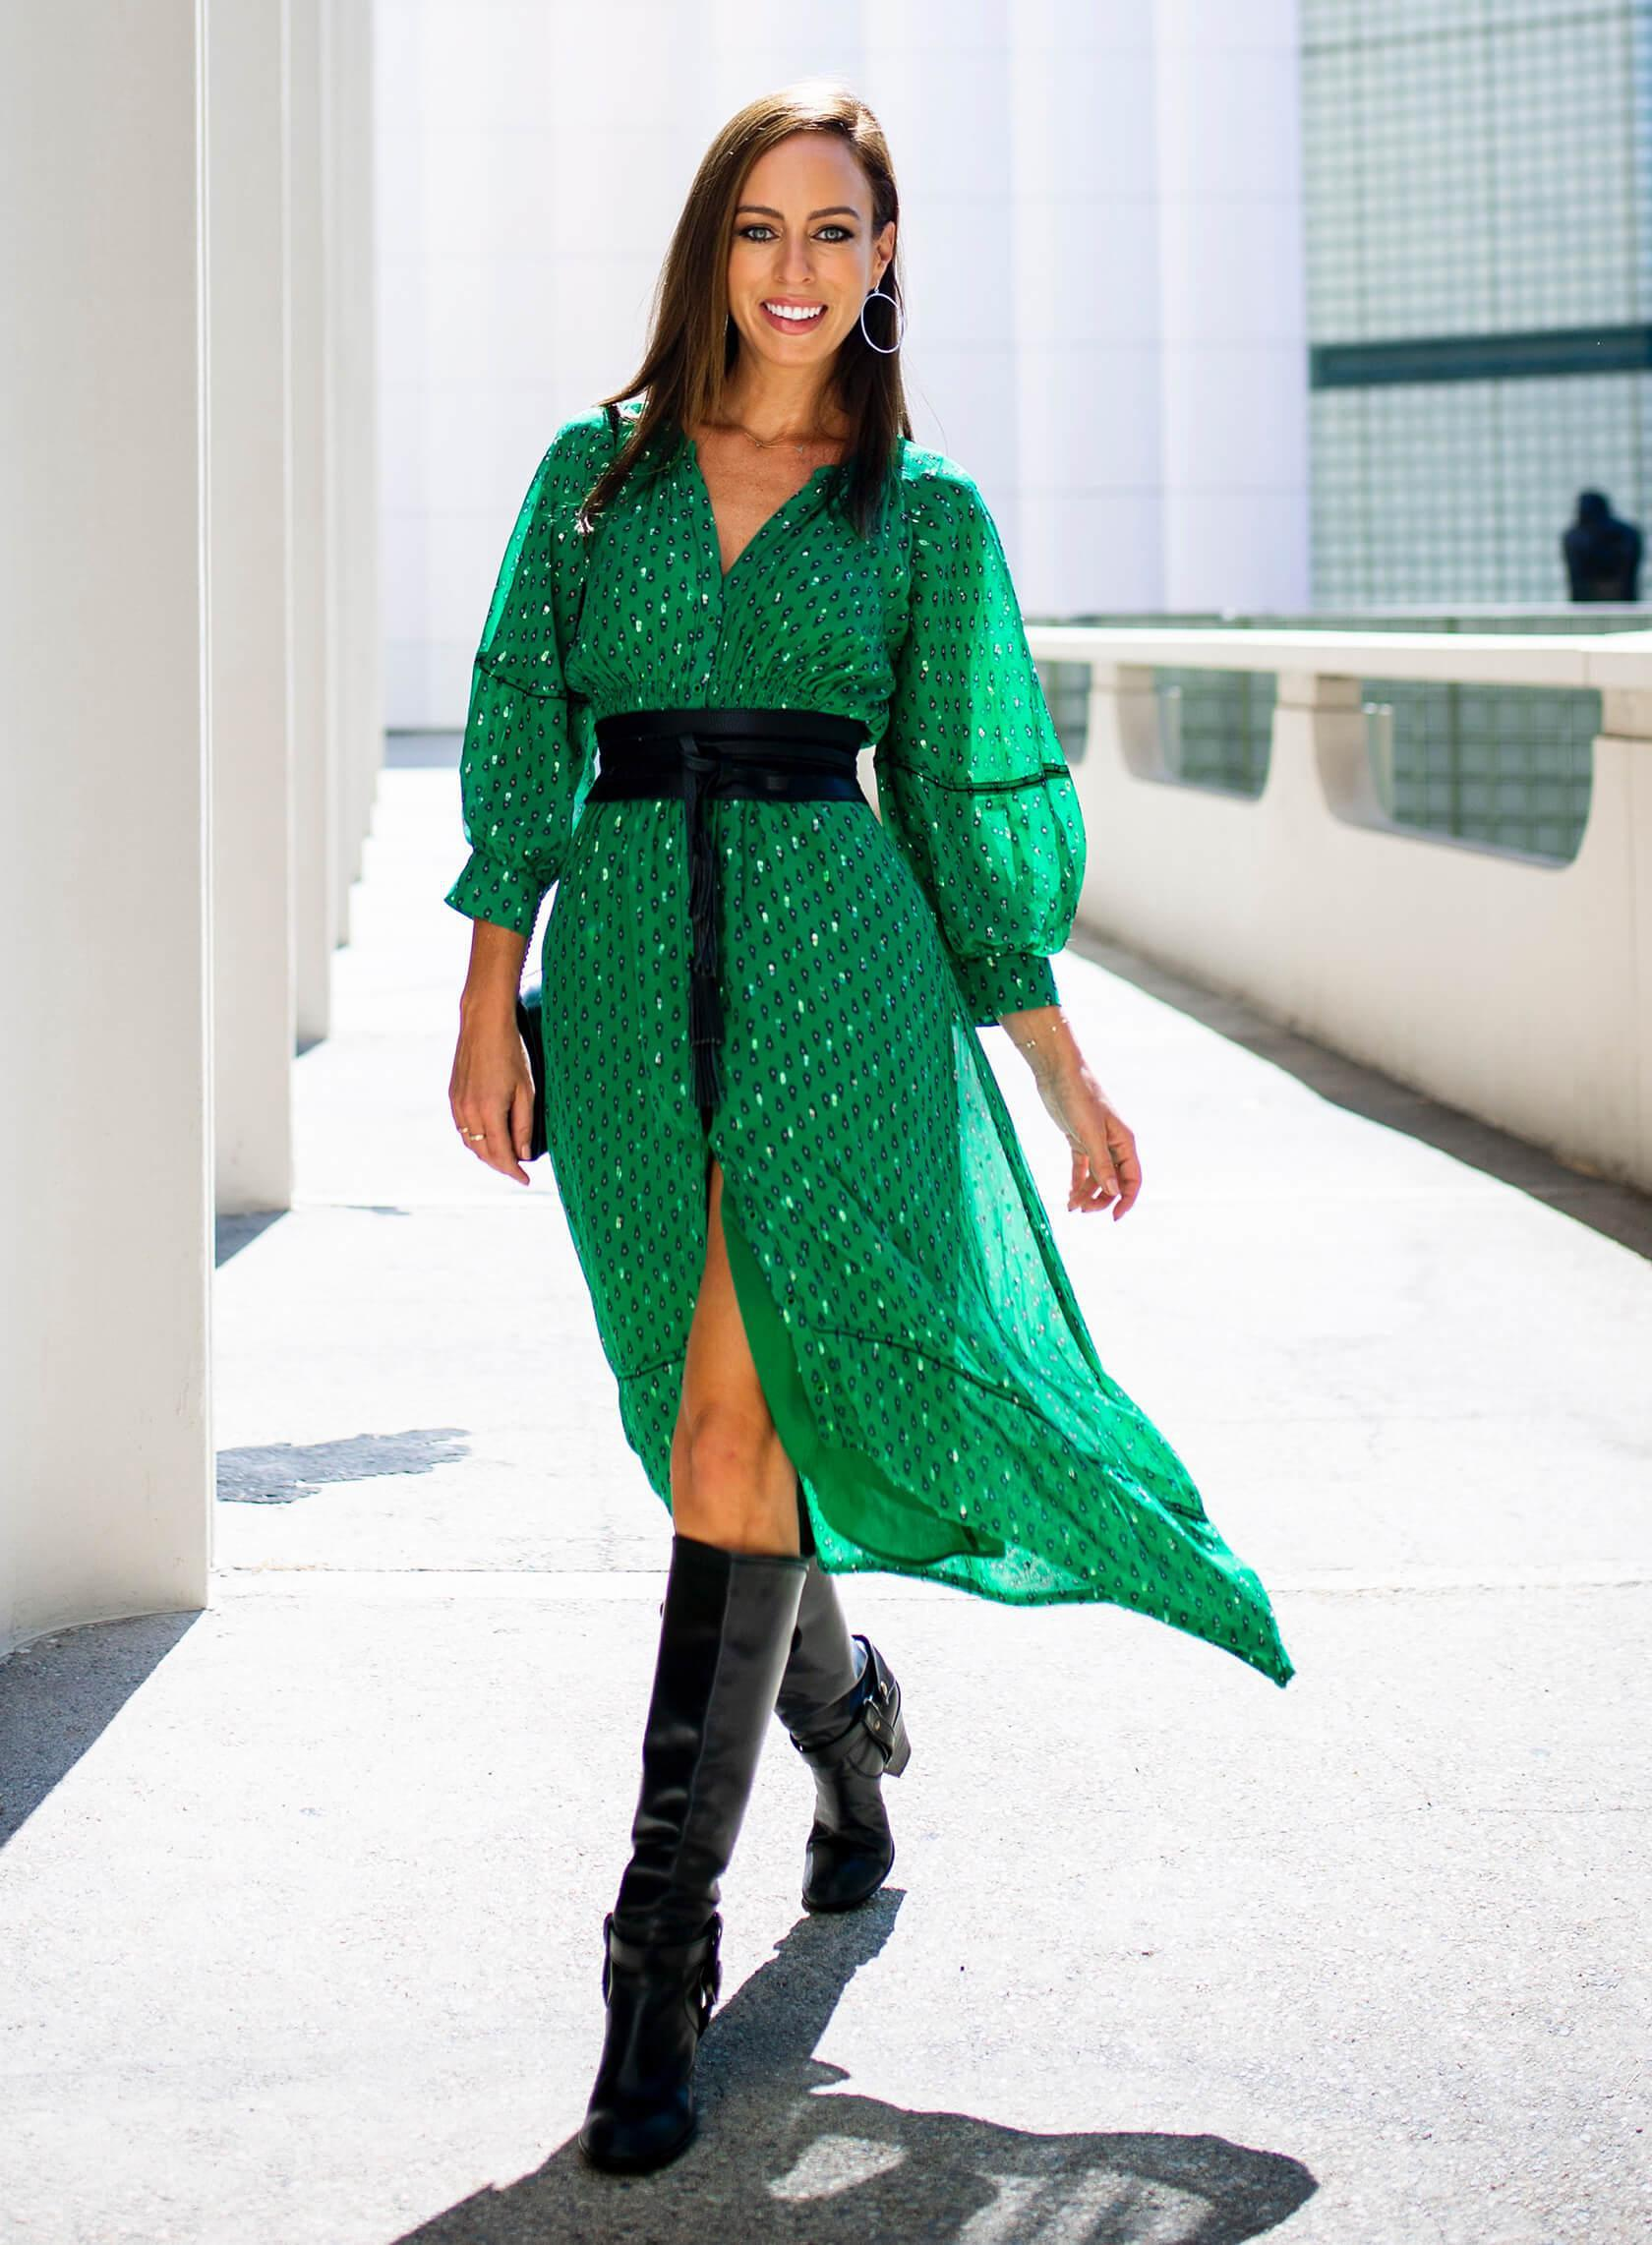 sydne summer's fashion reviews & style tips blogger dress shoes belt green dress knee high boots fall outfits